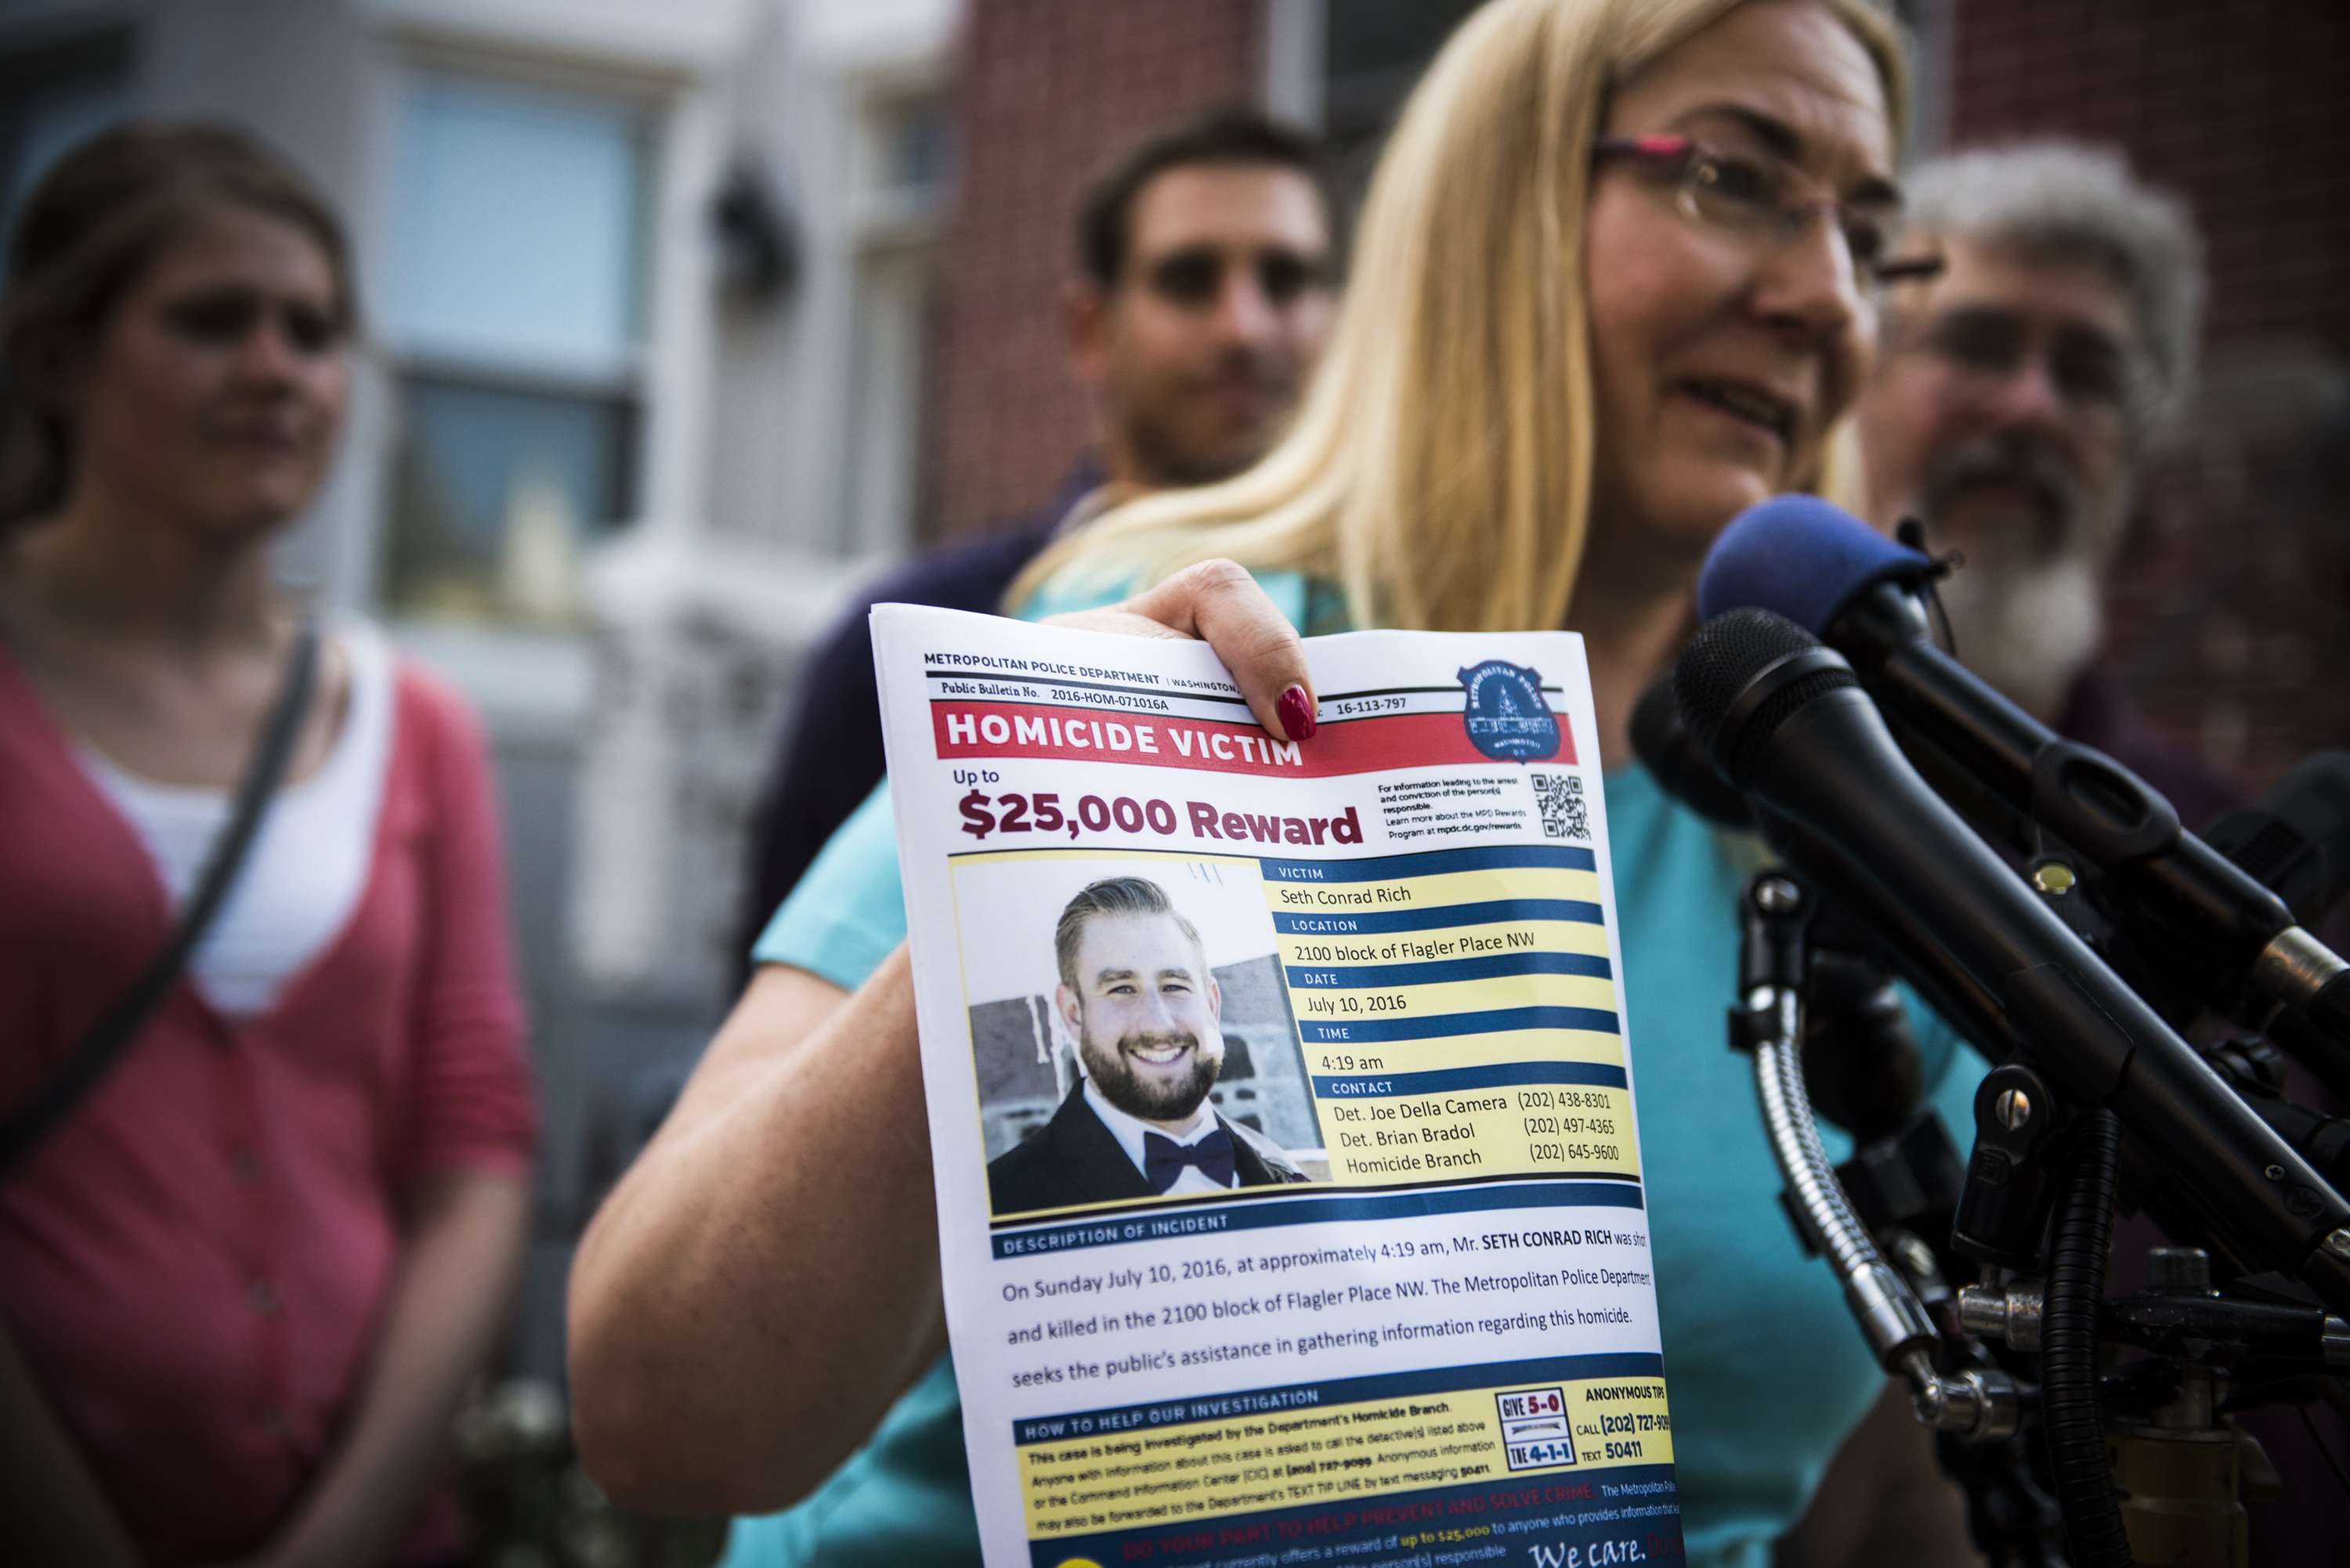 Mary Rich, the mother Seth Rich, gives a press conference in the Bloomingdale neighborhood of Washington DC, on August 1, 2016.